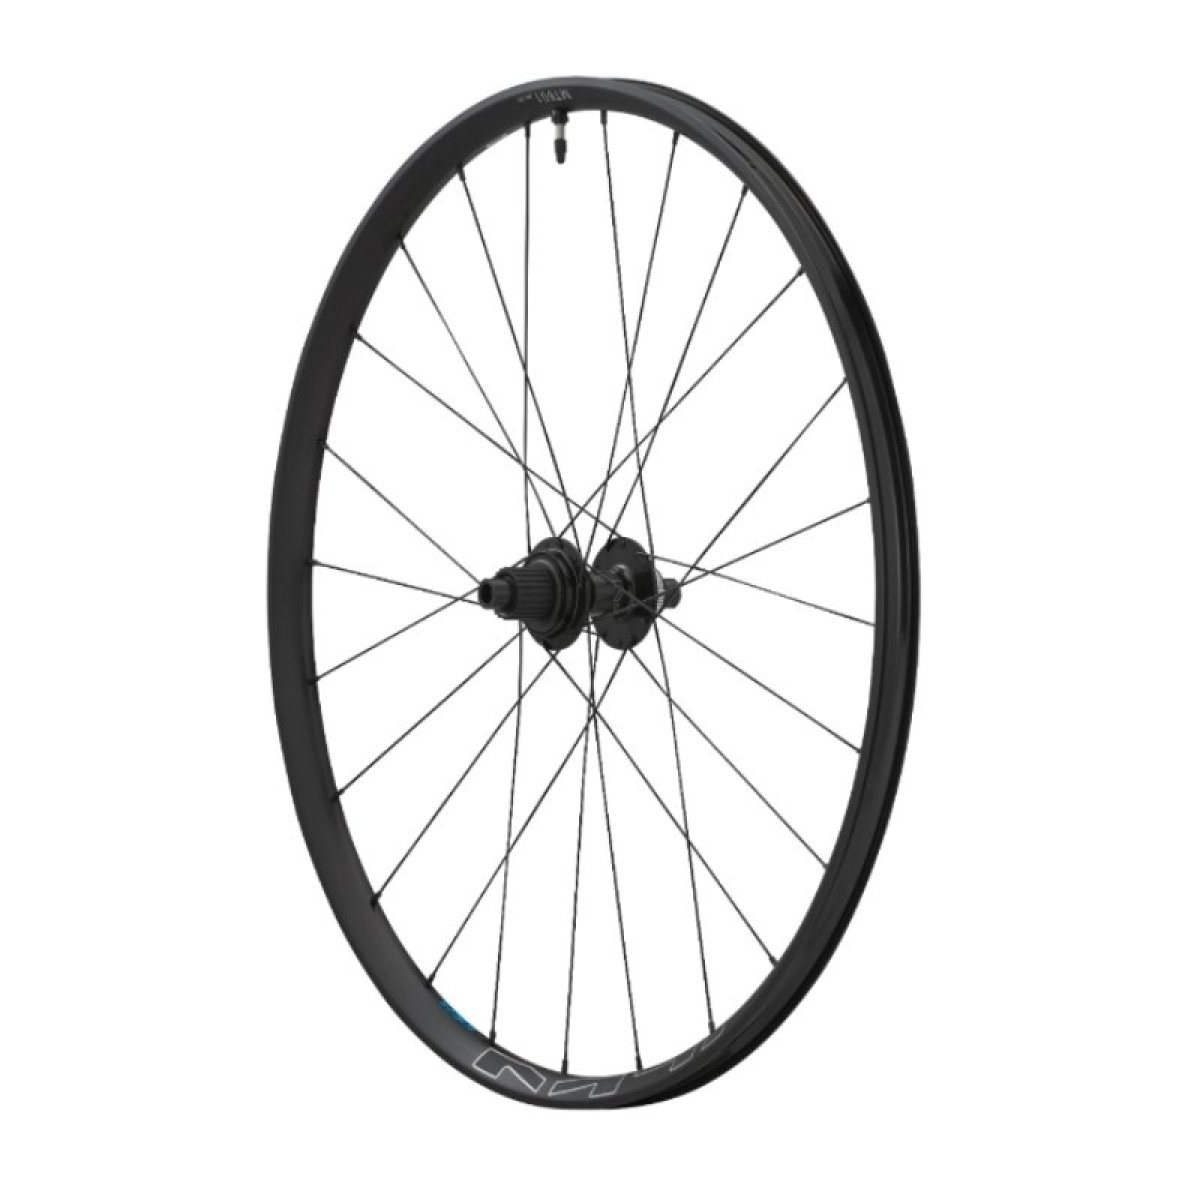 Колесо заднее Shimano WH-MT601-29 OLD: 142мм WHMT601LRED9B